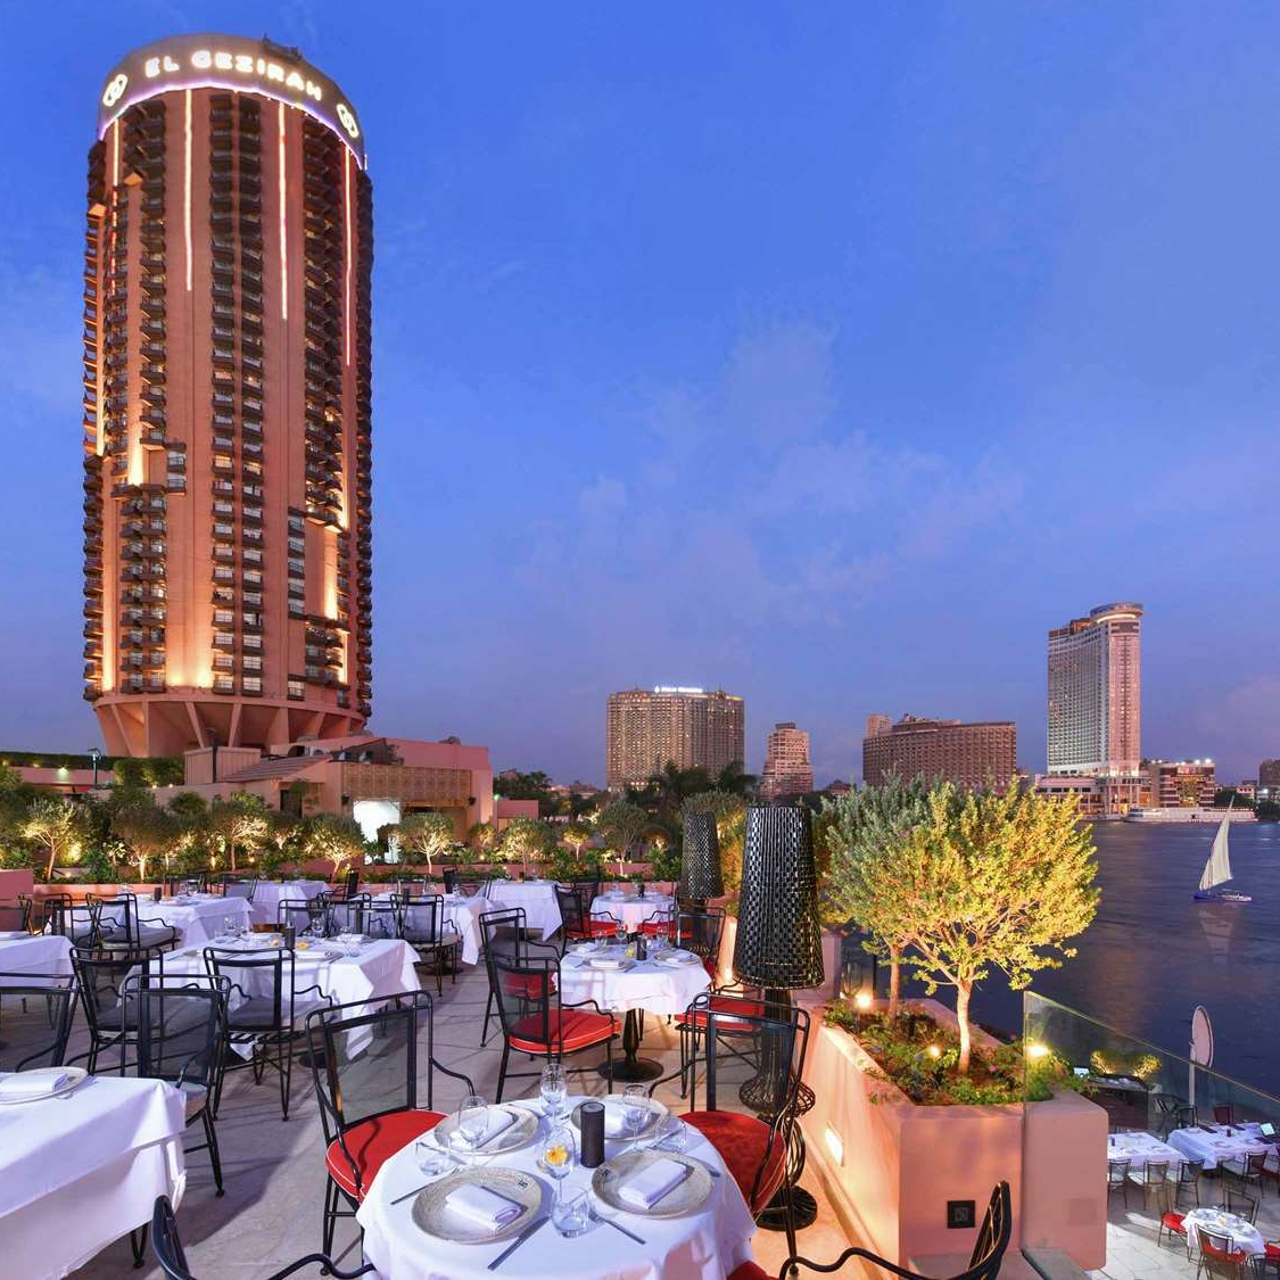 Luxurious 5 Star Hotels In Cairo Egypt